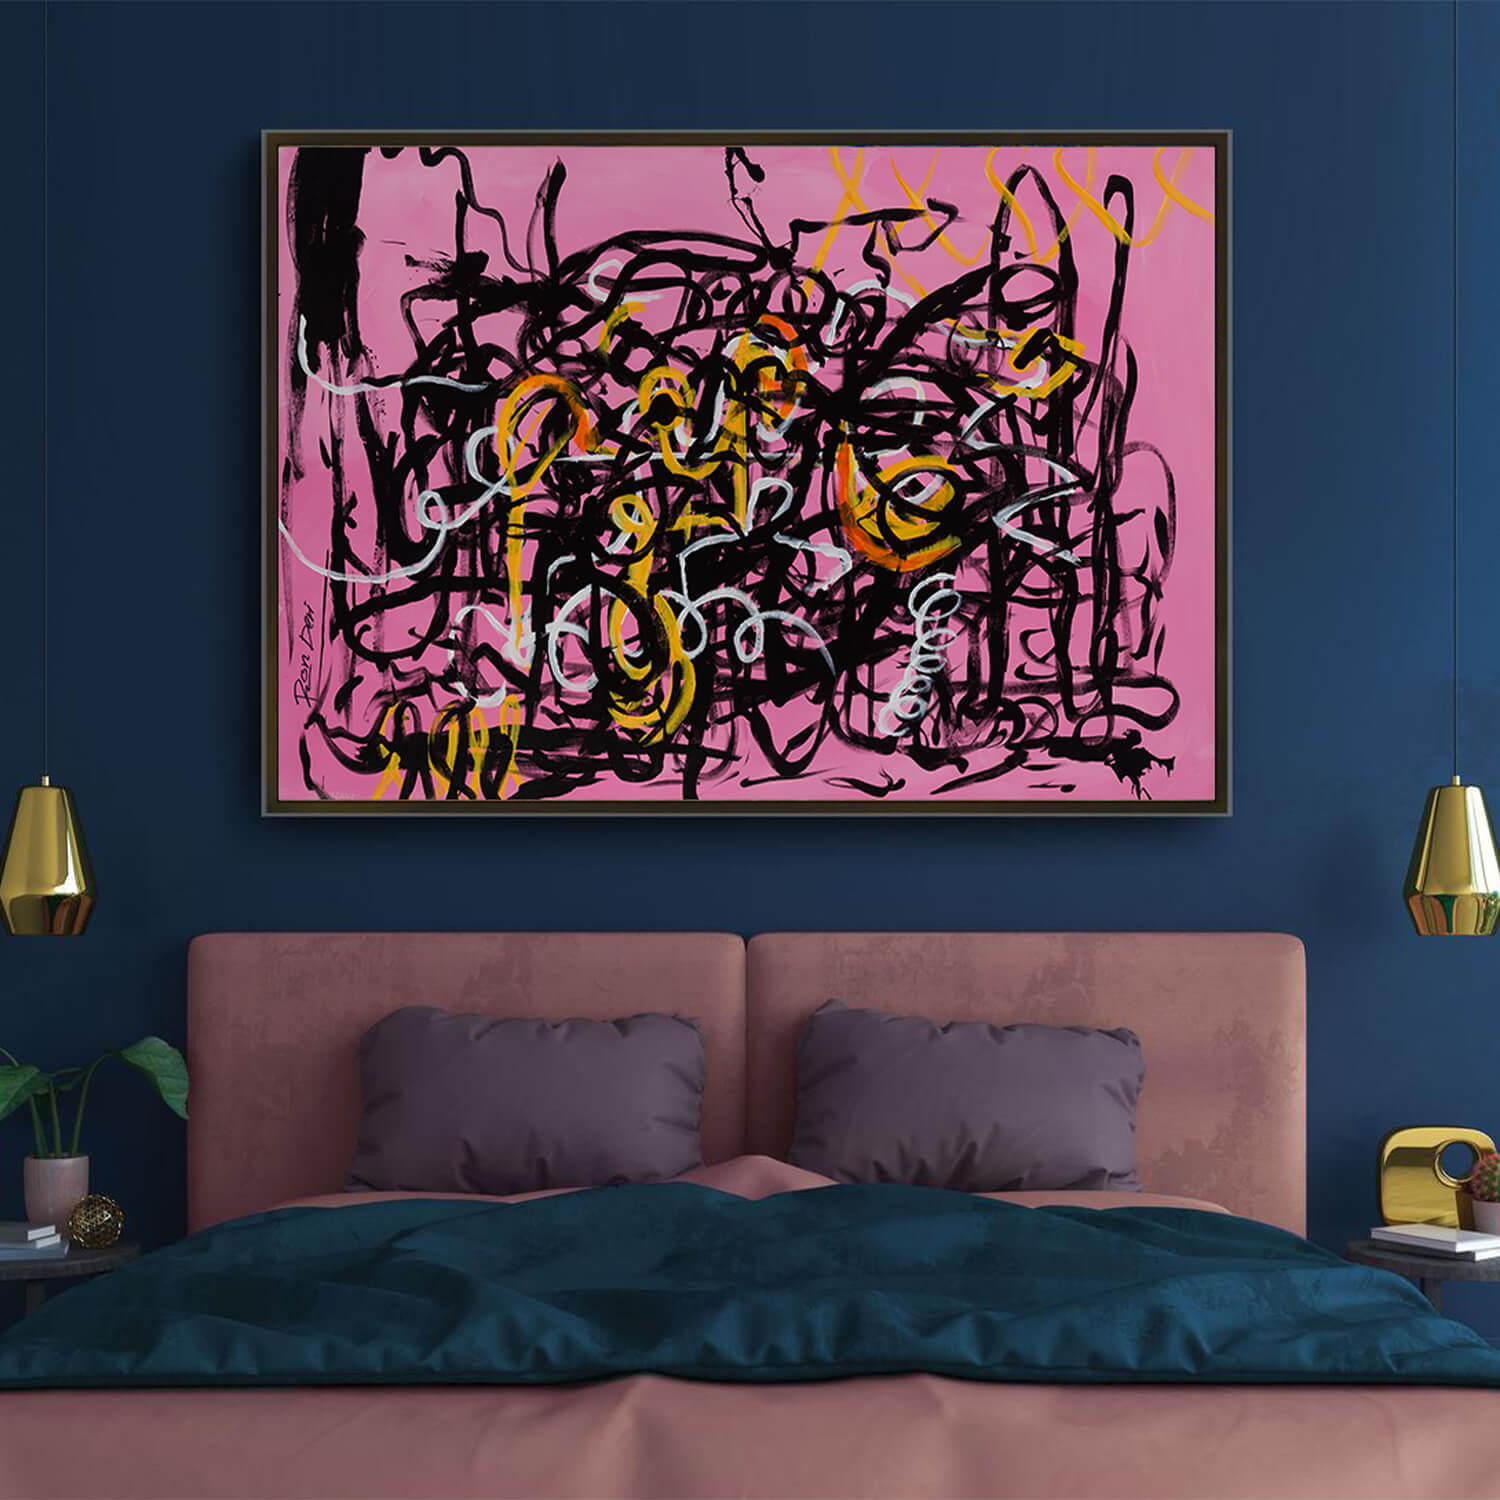 Chaos Ii Pink Abstract Artwork Print For Sale Ron Deri Abstract Art